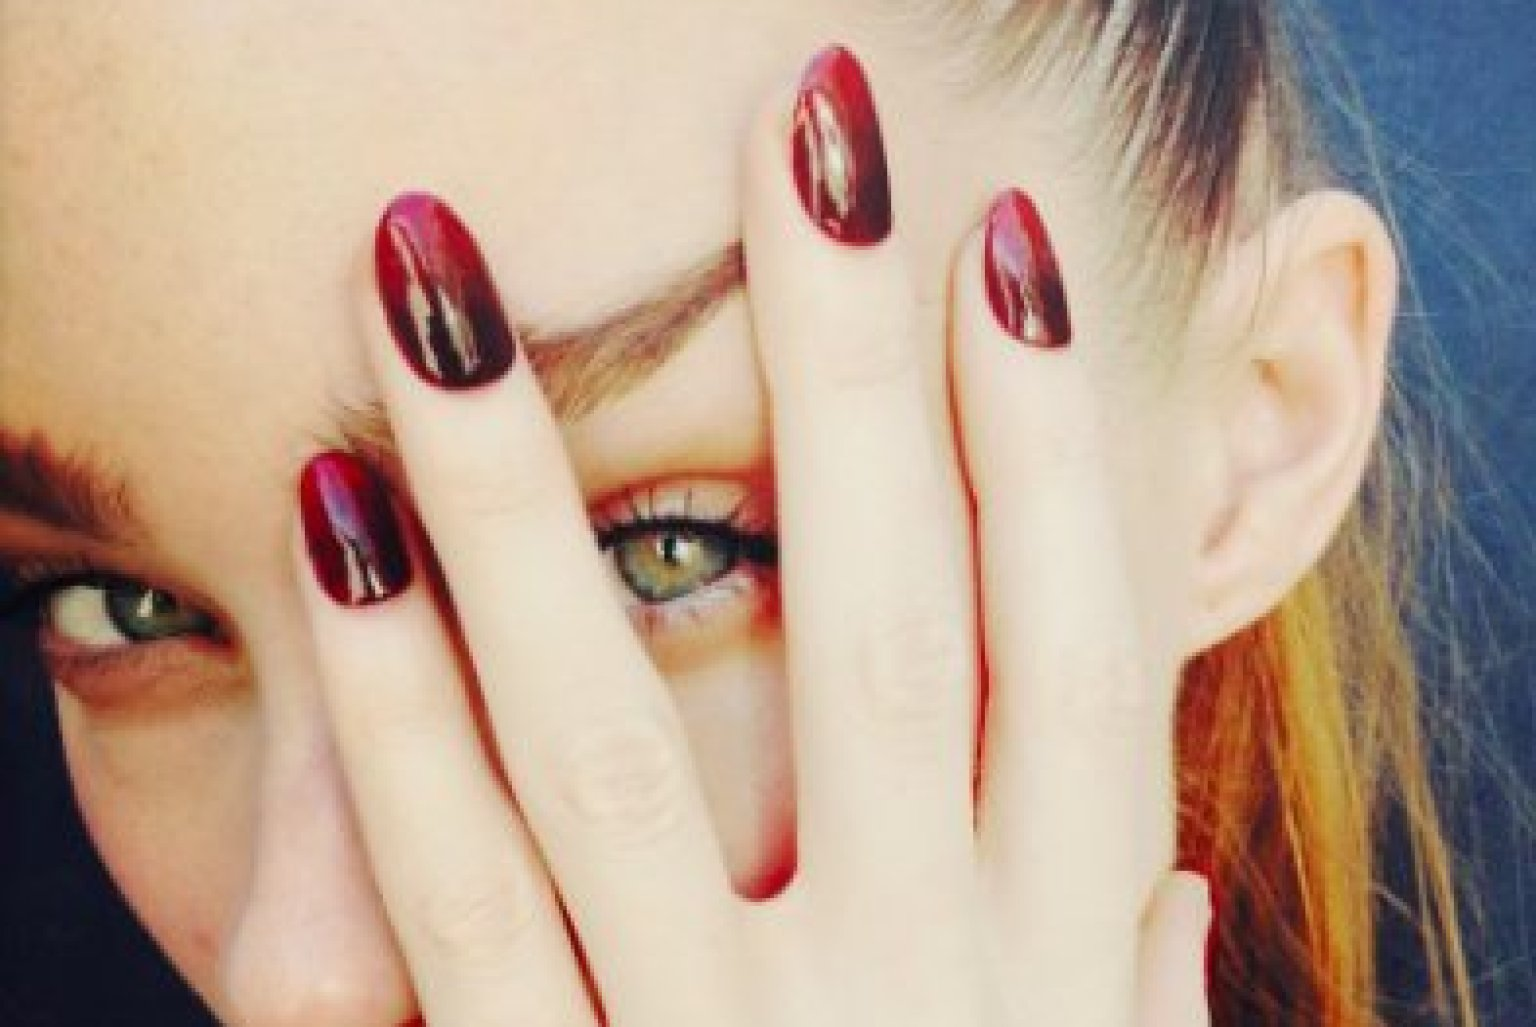 Fall Nail Colors 2012 How To Wear This Seasons Dark Dreamy Polish Hues PHOTOS